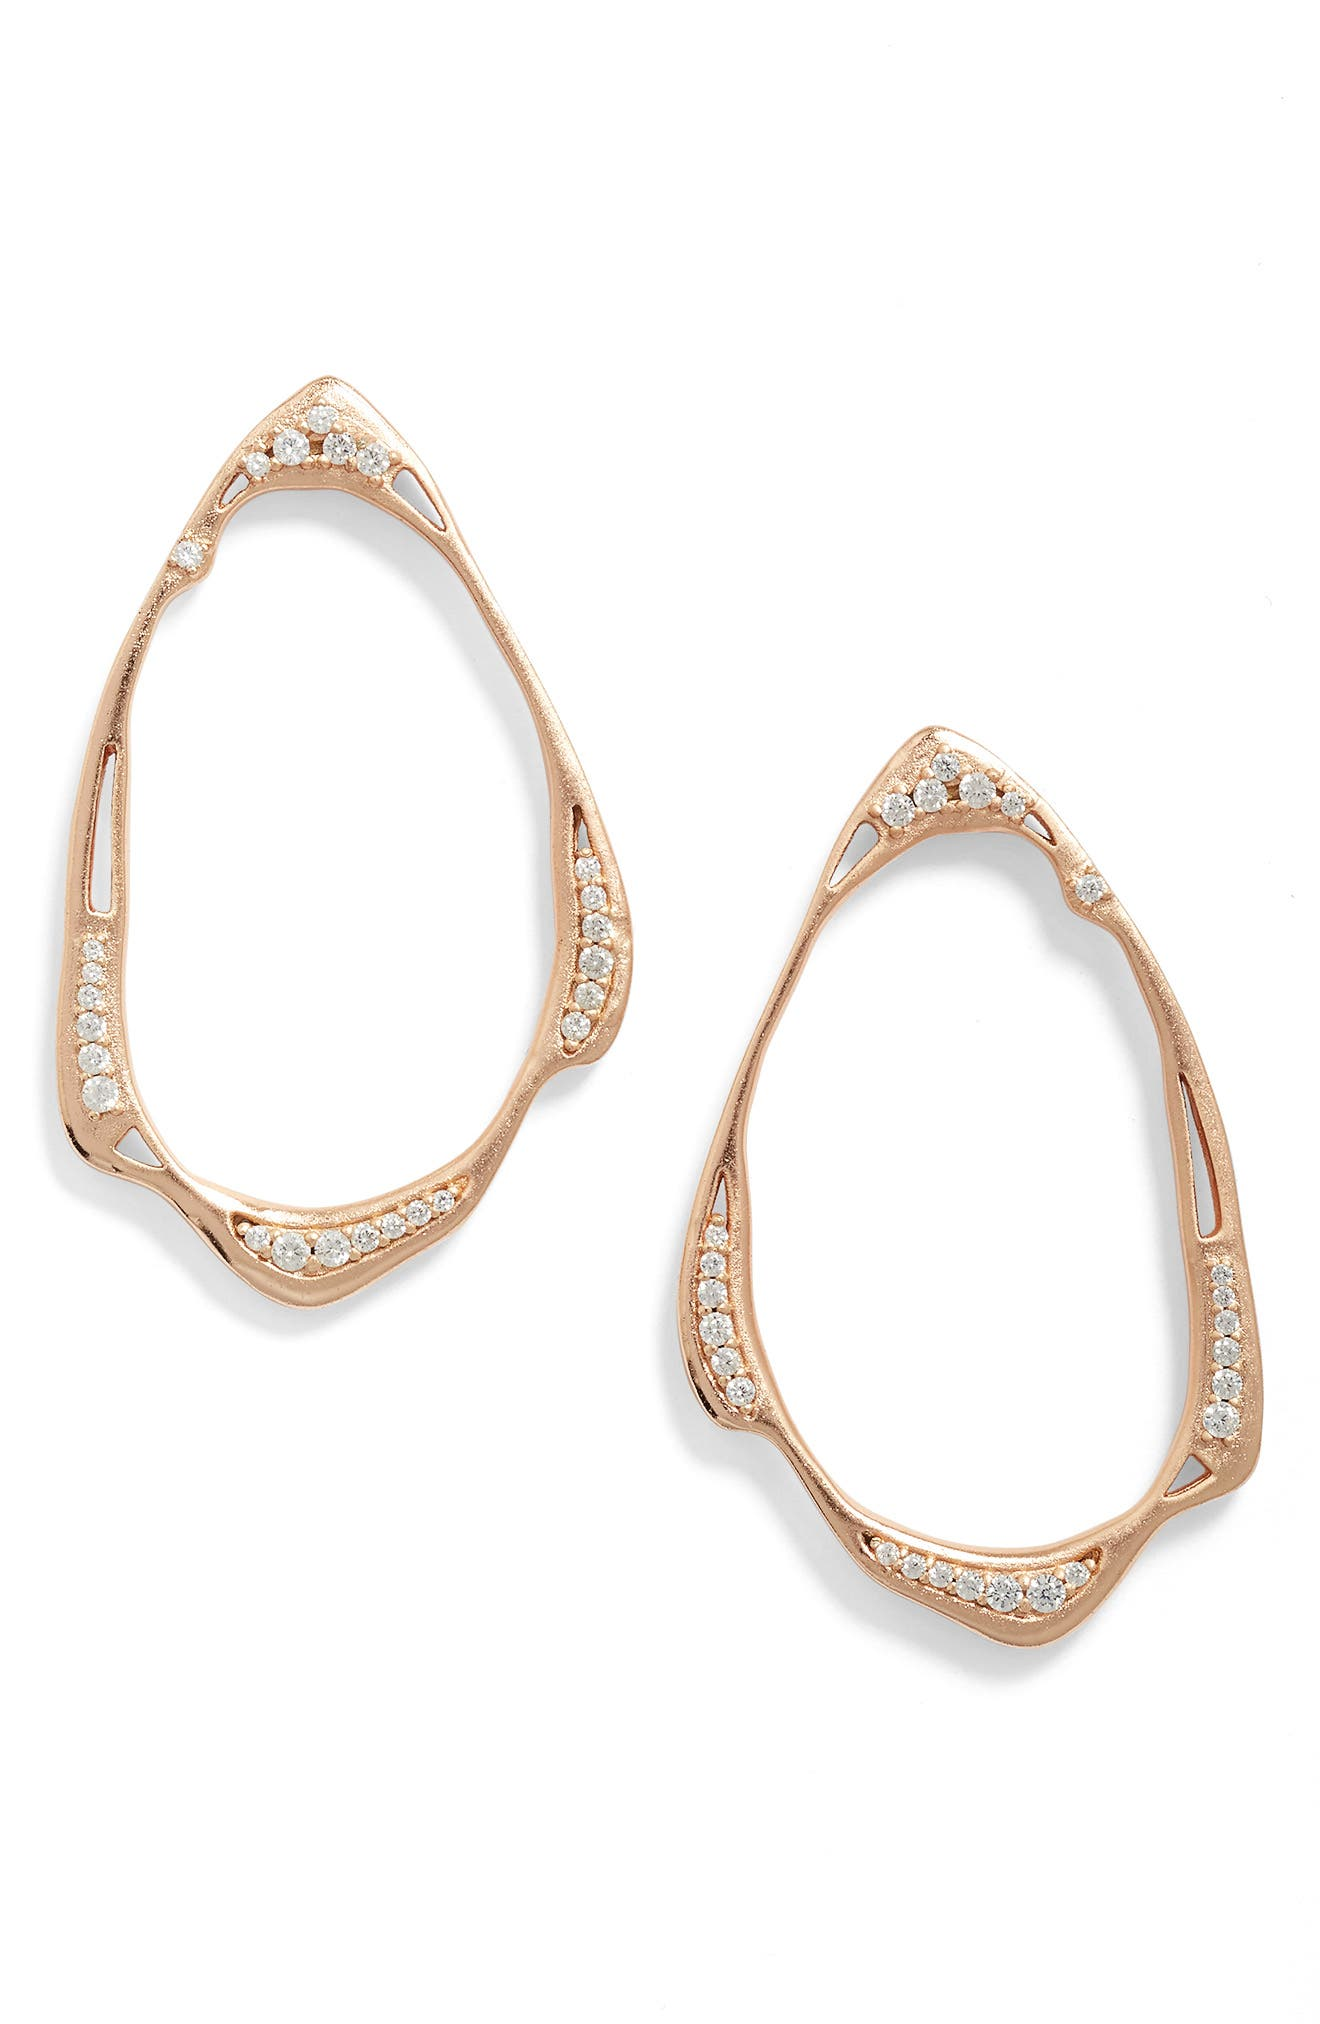 Kendra Scott Livi Frontal Hoop Earrings